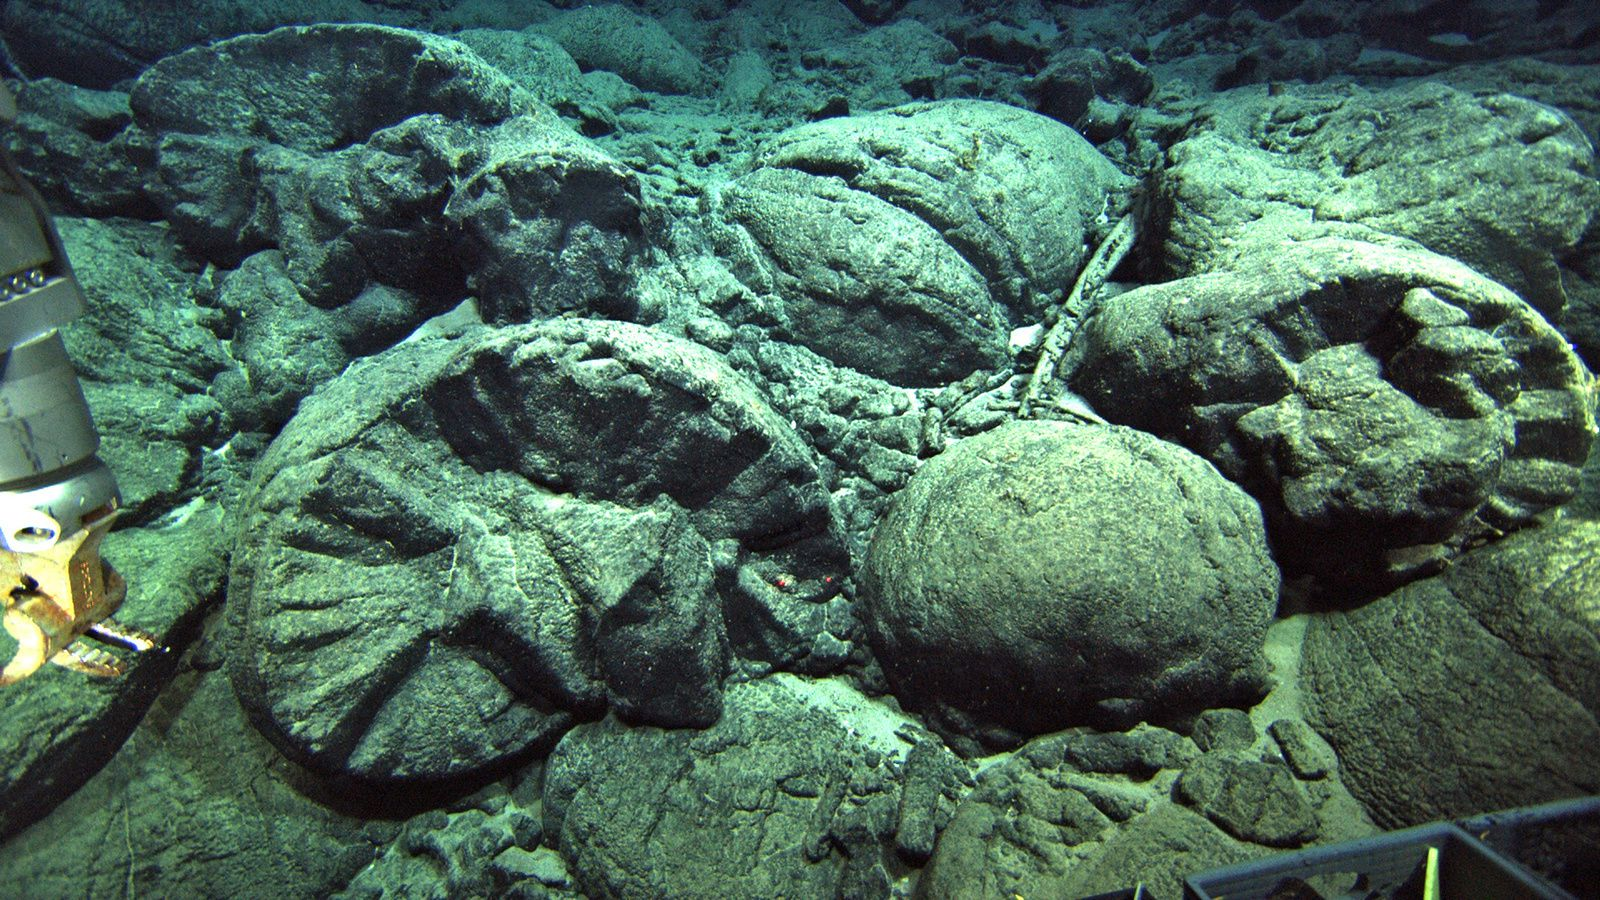 Pillow lavas sur  Ka'ena / Hawaii - Oahu.- Photo University of Hawaii at Manoa./ via Live Science